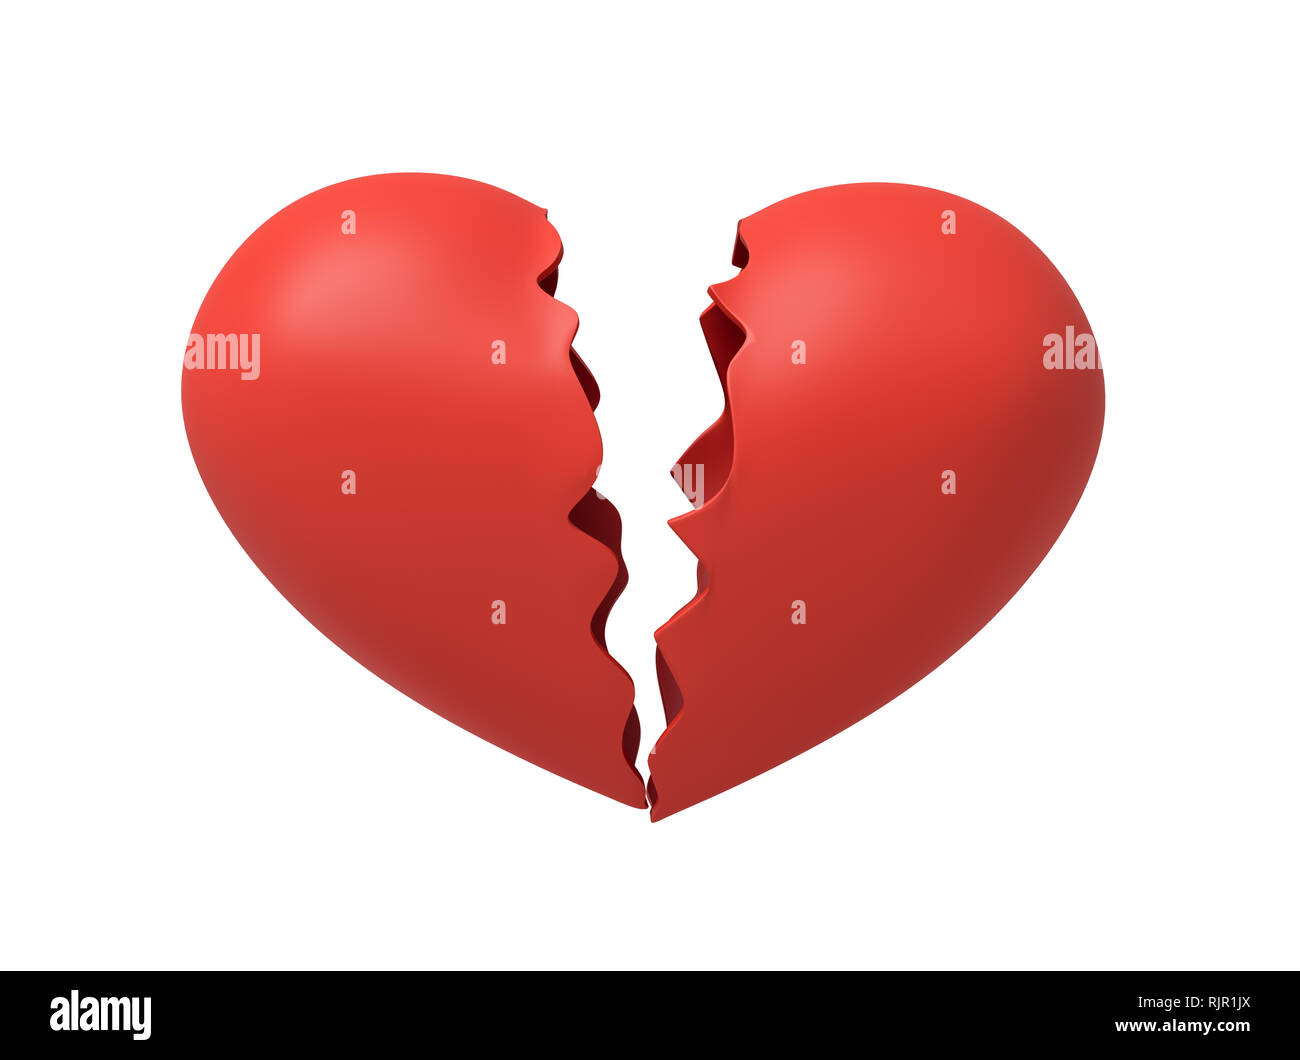 3d rendering of red broken heart isolated on white background. Digital art. Concept ideas. Feelings and emotions. - Stock Image